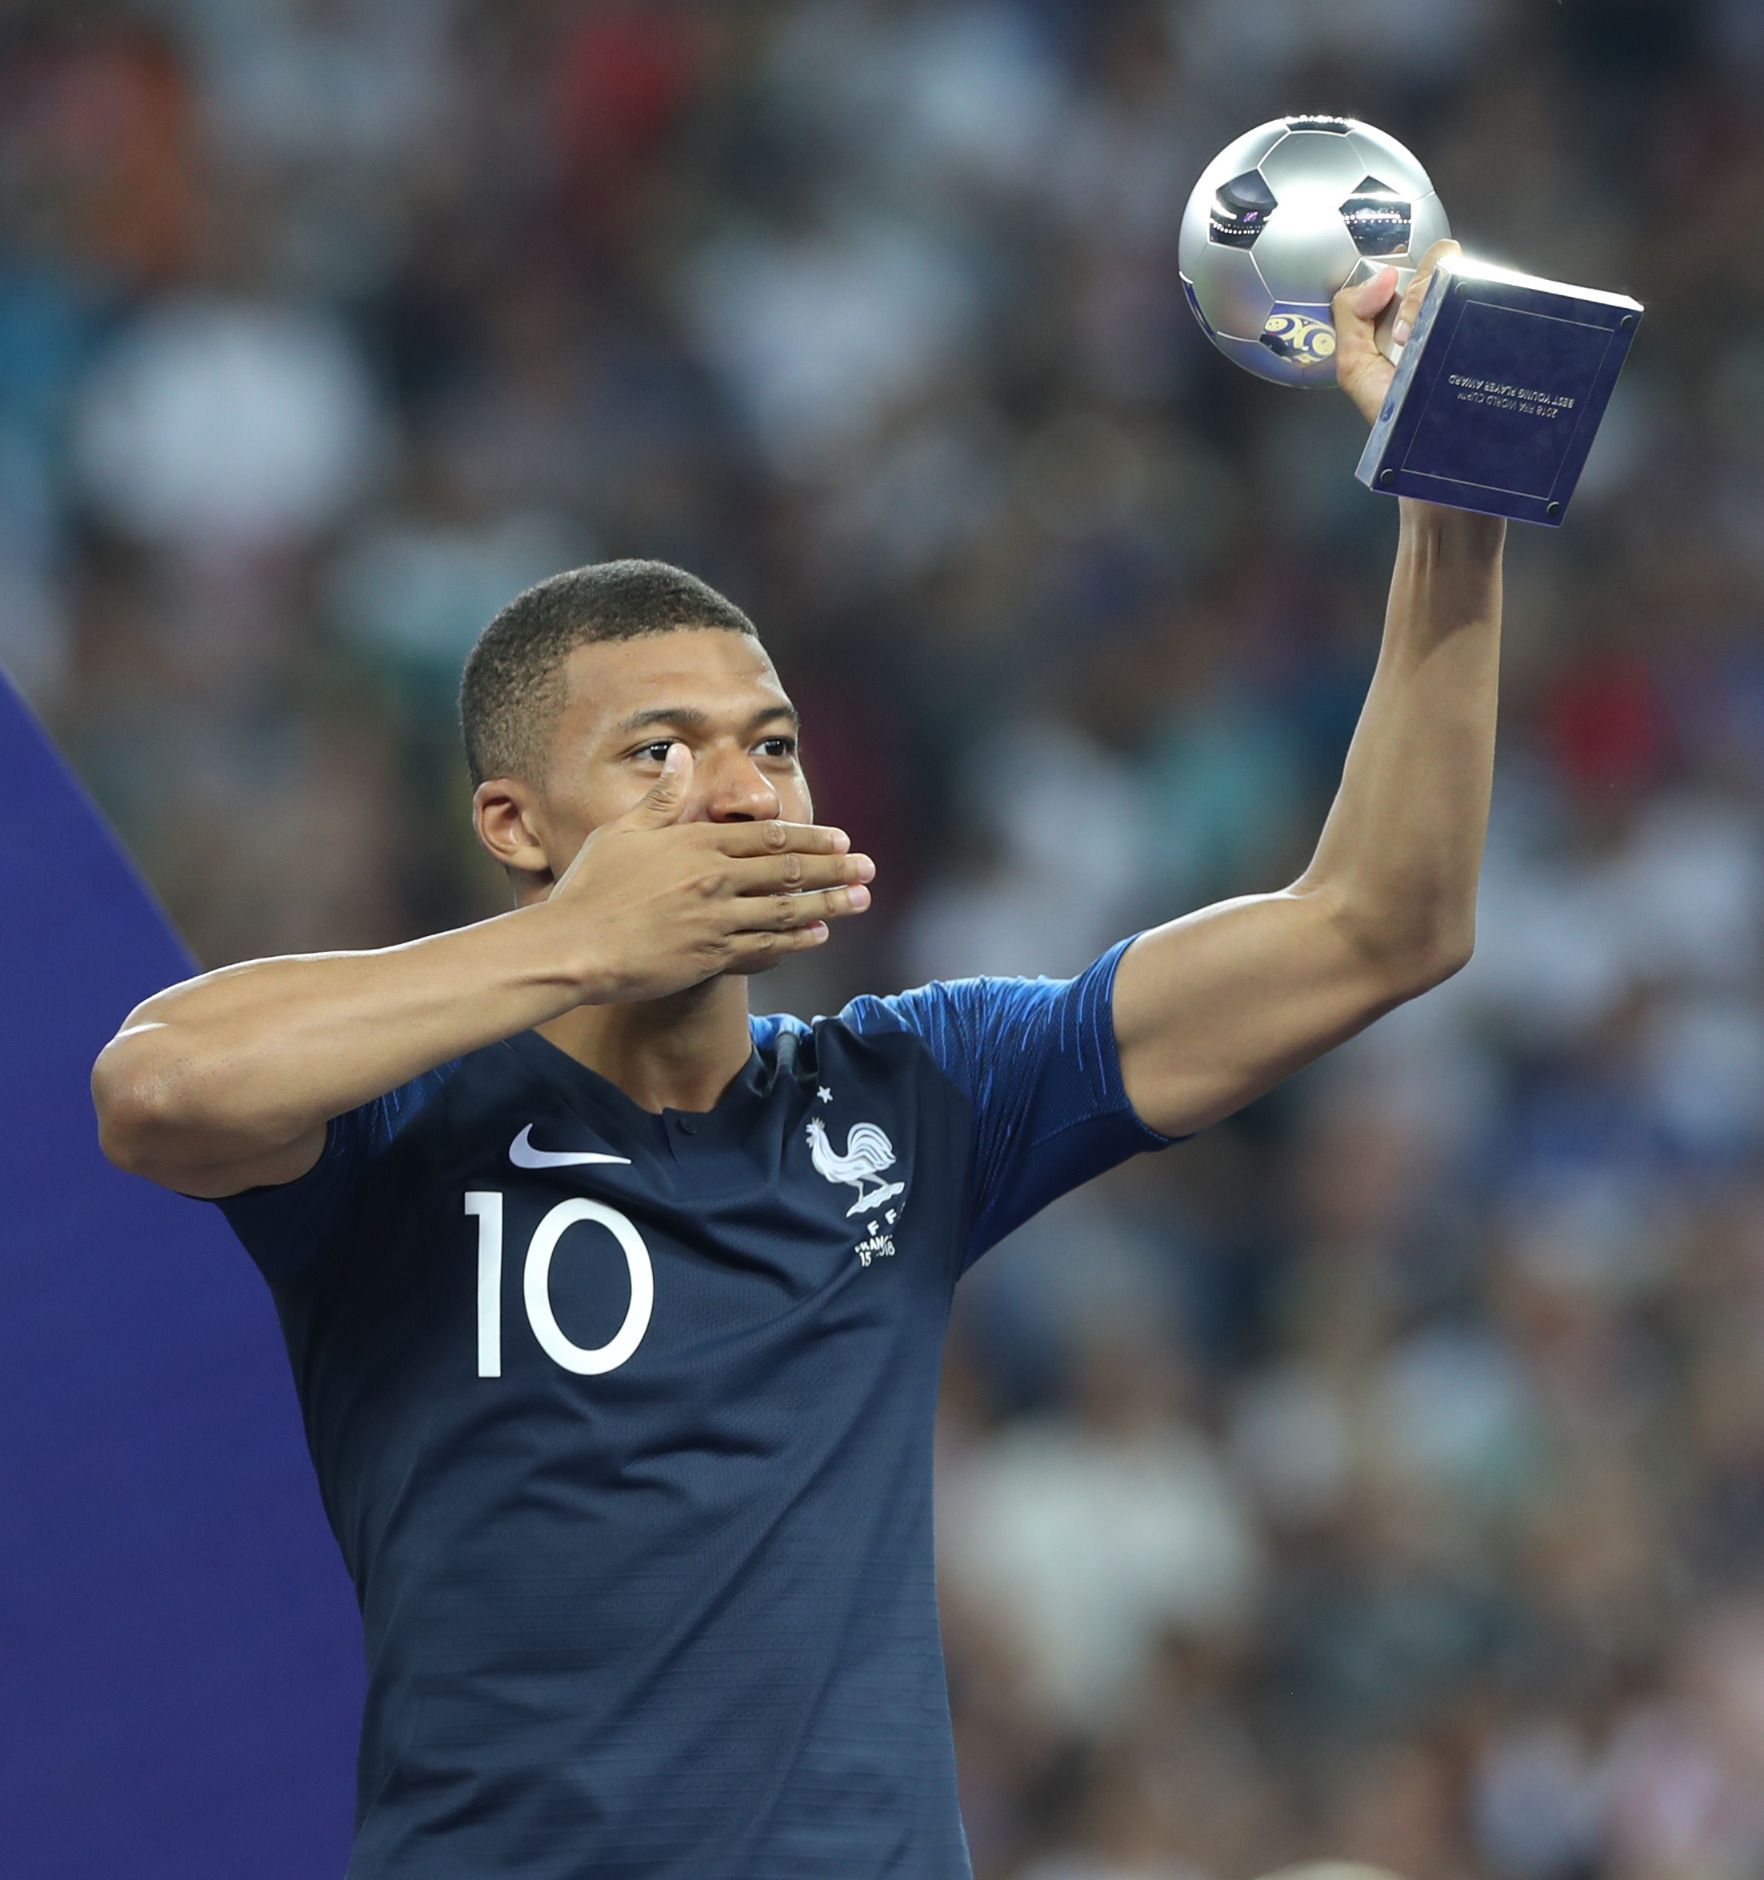 French forward Kylian Mbappé